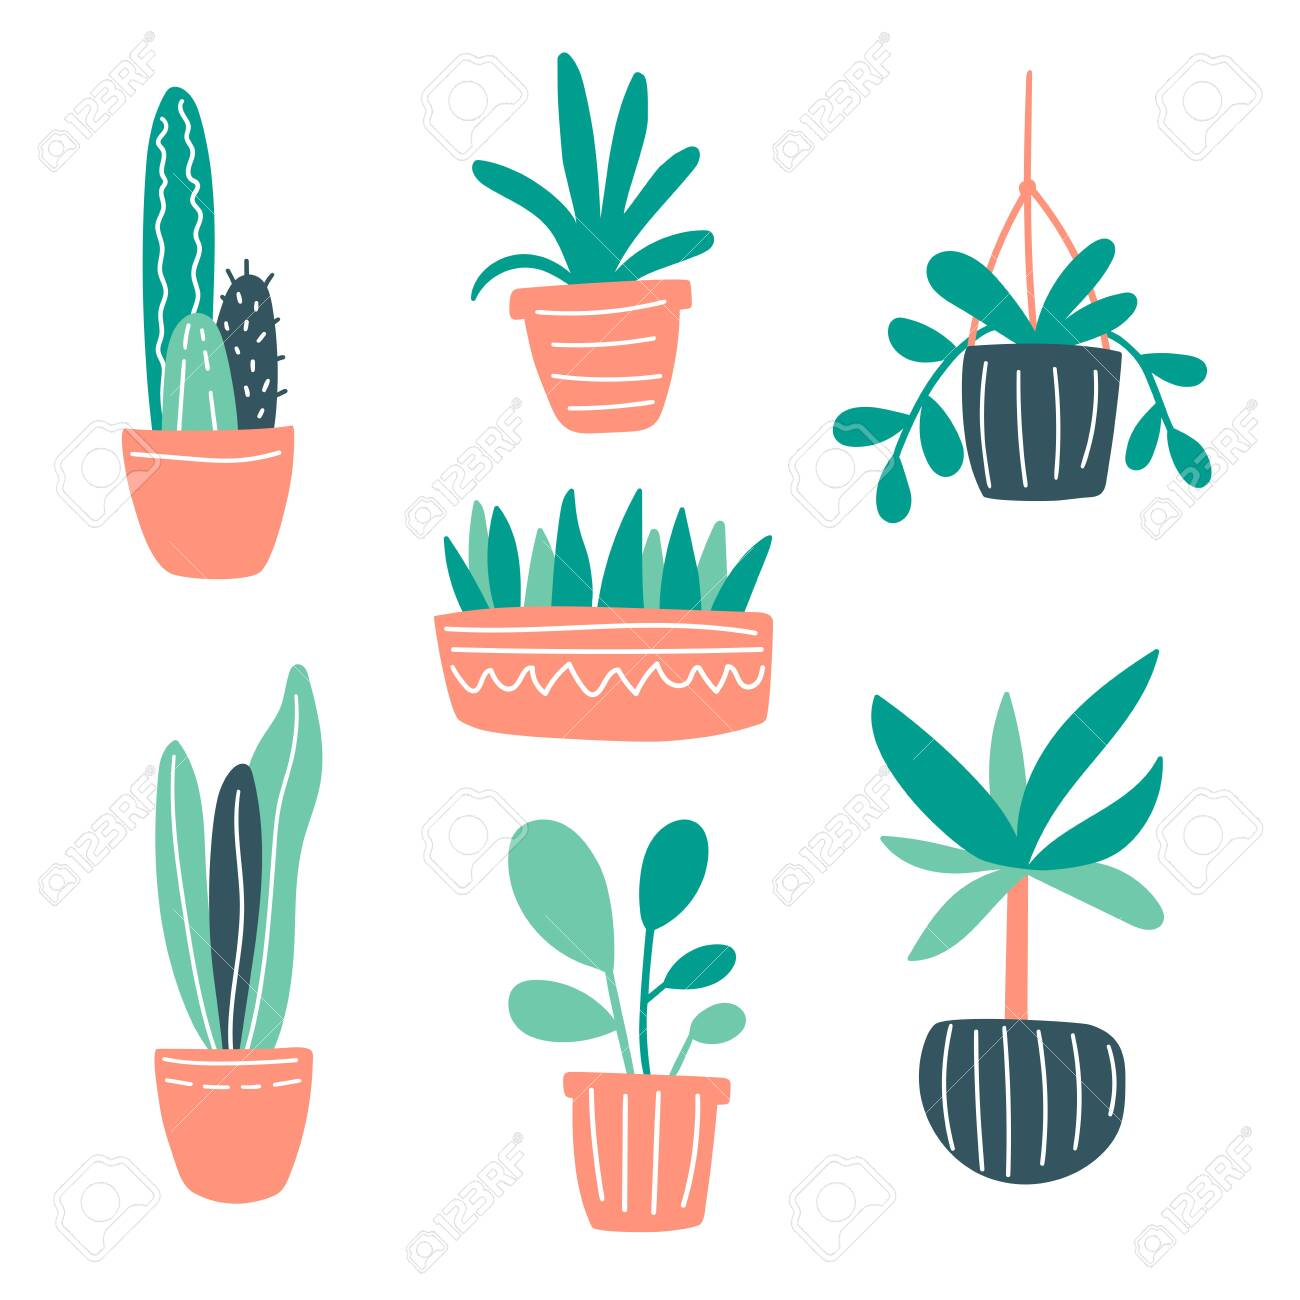 Vector illustration with home plants collection set. Cute doodle plants growing in pots. Green home gardening concept for decor, design, poster, blog. Plants are friends. Cacti and succulents doodle - 150702463